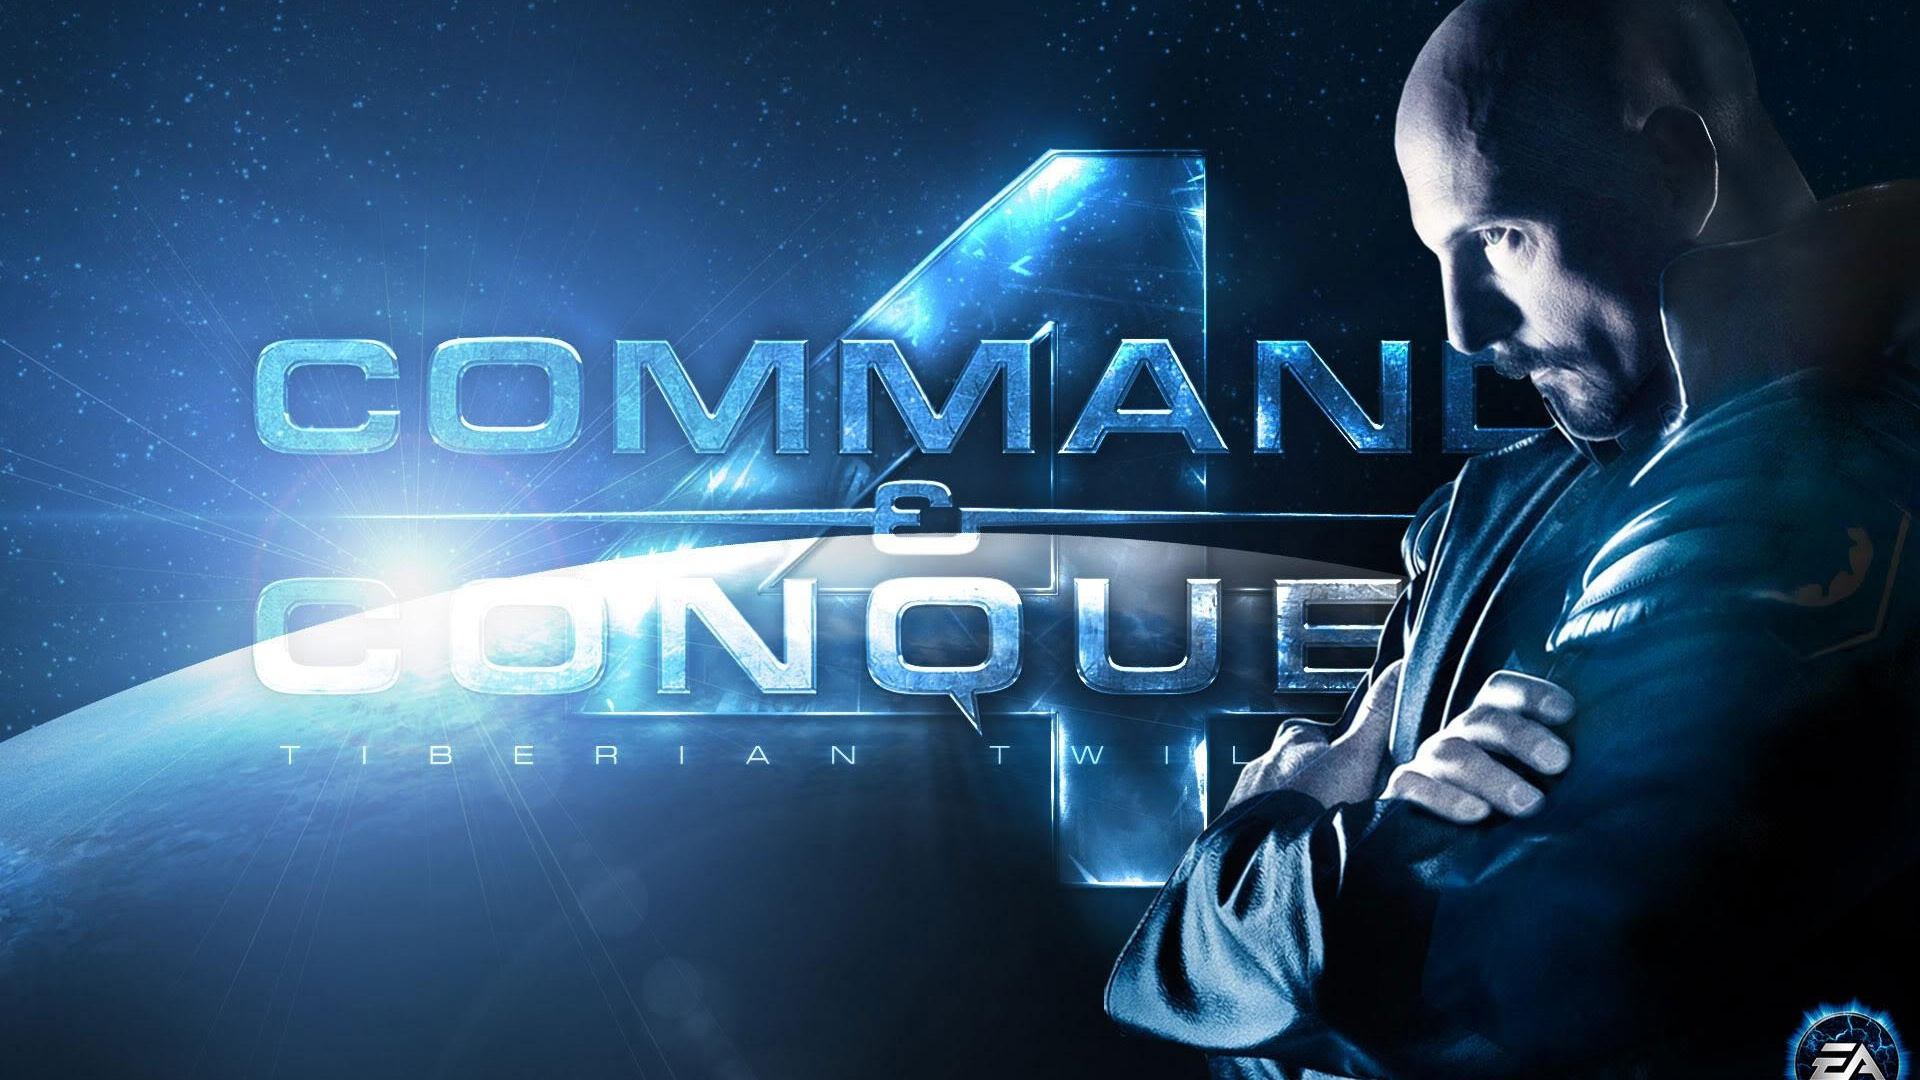 command  conquer 4 tiberian twilight wallpapers - Command And Conquer 4 Tiberian Twilight HD desktop